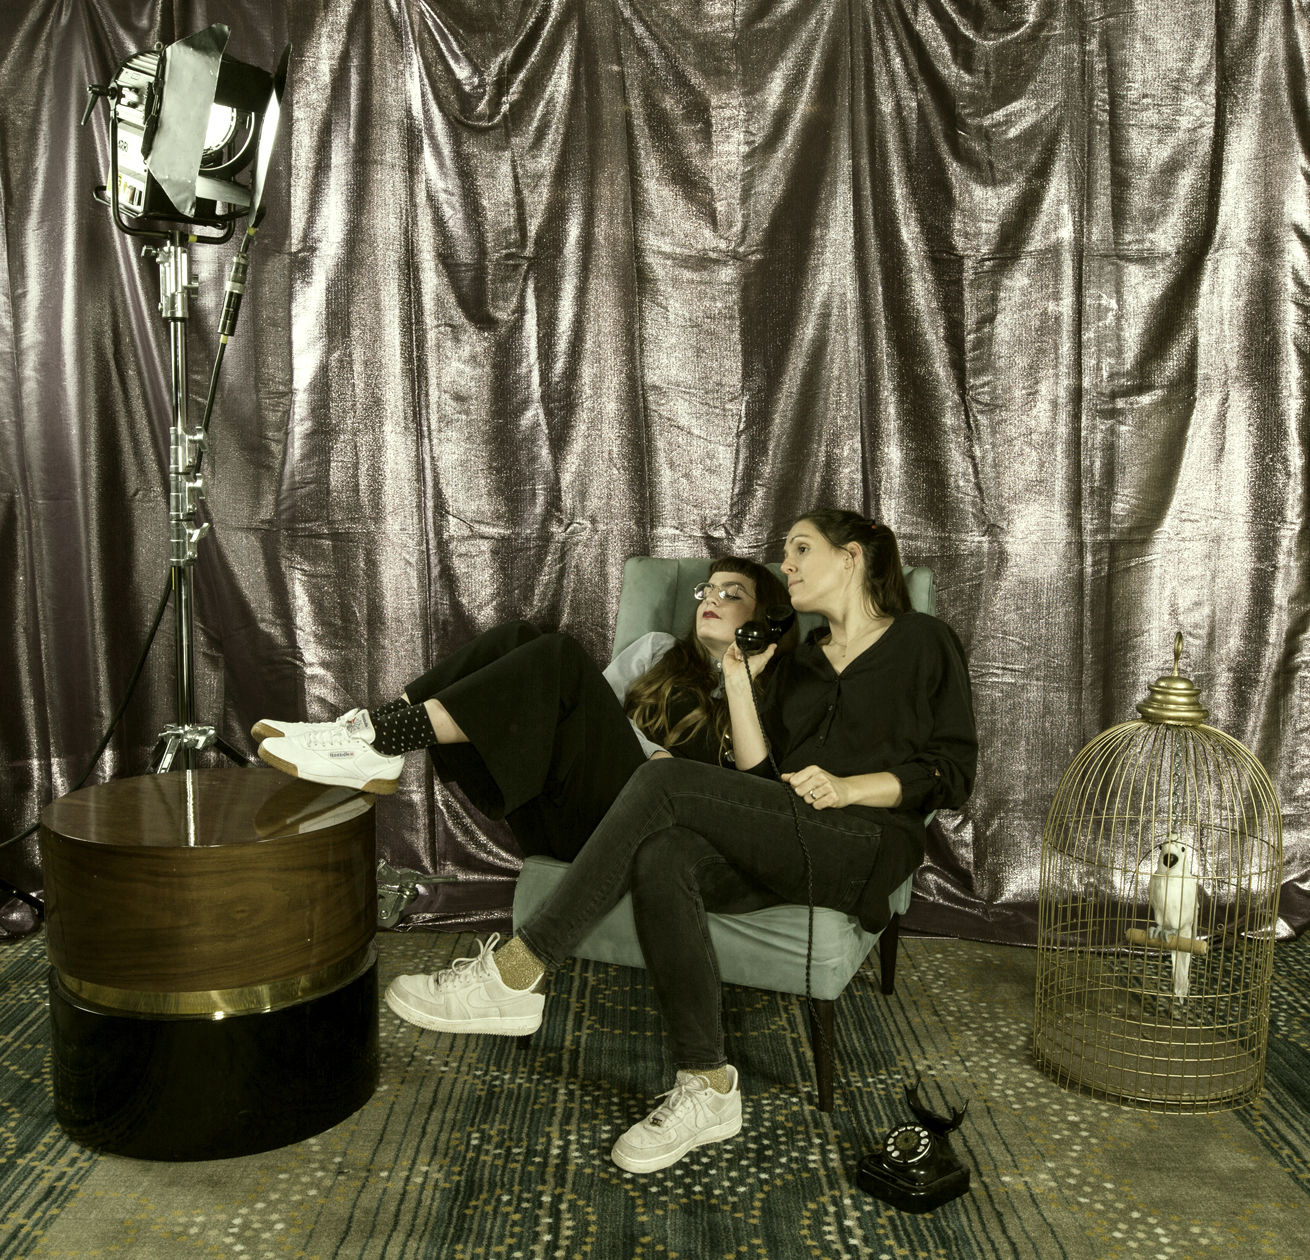 UPDATE17 BERLIN - Vintage Shoot by Daniel Lathwesen, Part Two